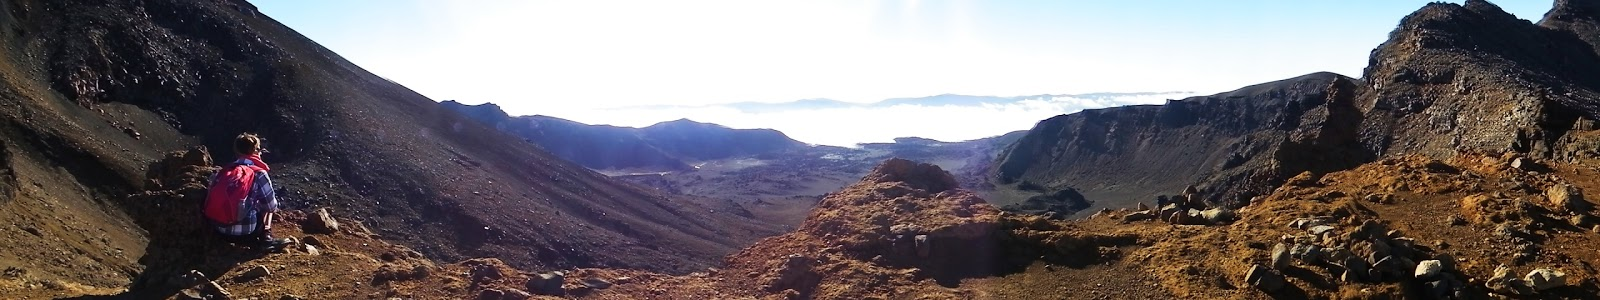 Tongariro Alpine Crossing panoramic